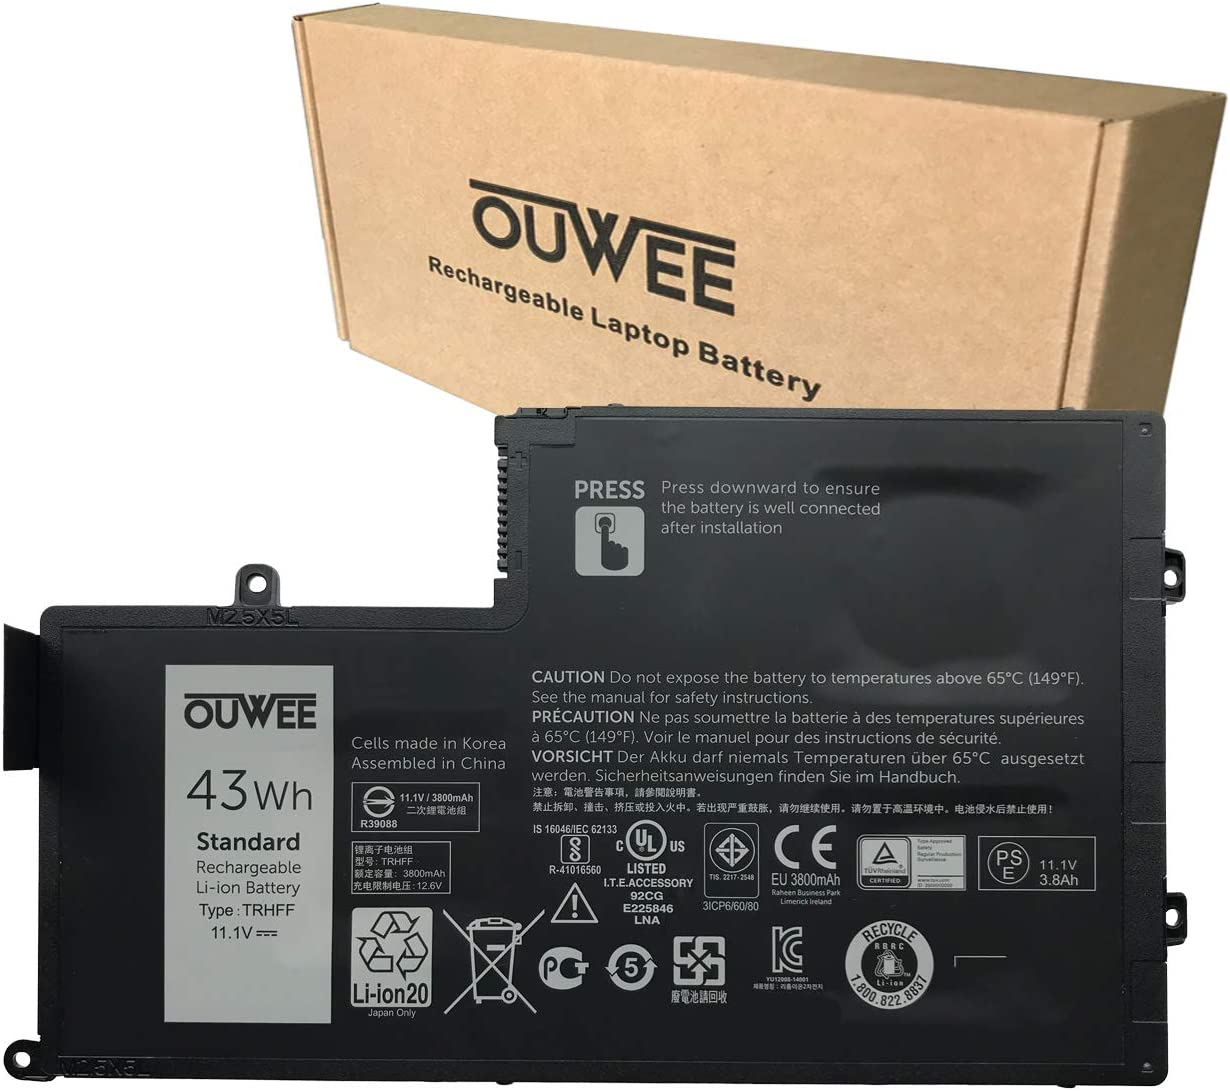 OUWEE TRHFF Laptop Battery Compatible with Dell Inspiron 14 5442 5443 5445 5447 5448 5457 15 5542 5543 5545 5547 5548 5557 Latitude 3450 3550 Series OPD19 0M7T5F 0M6WKR 11.1V 43Wh 3800mAh 4-Cell